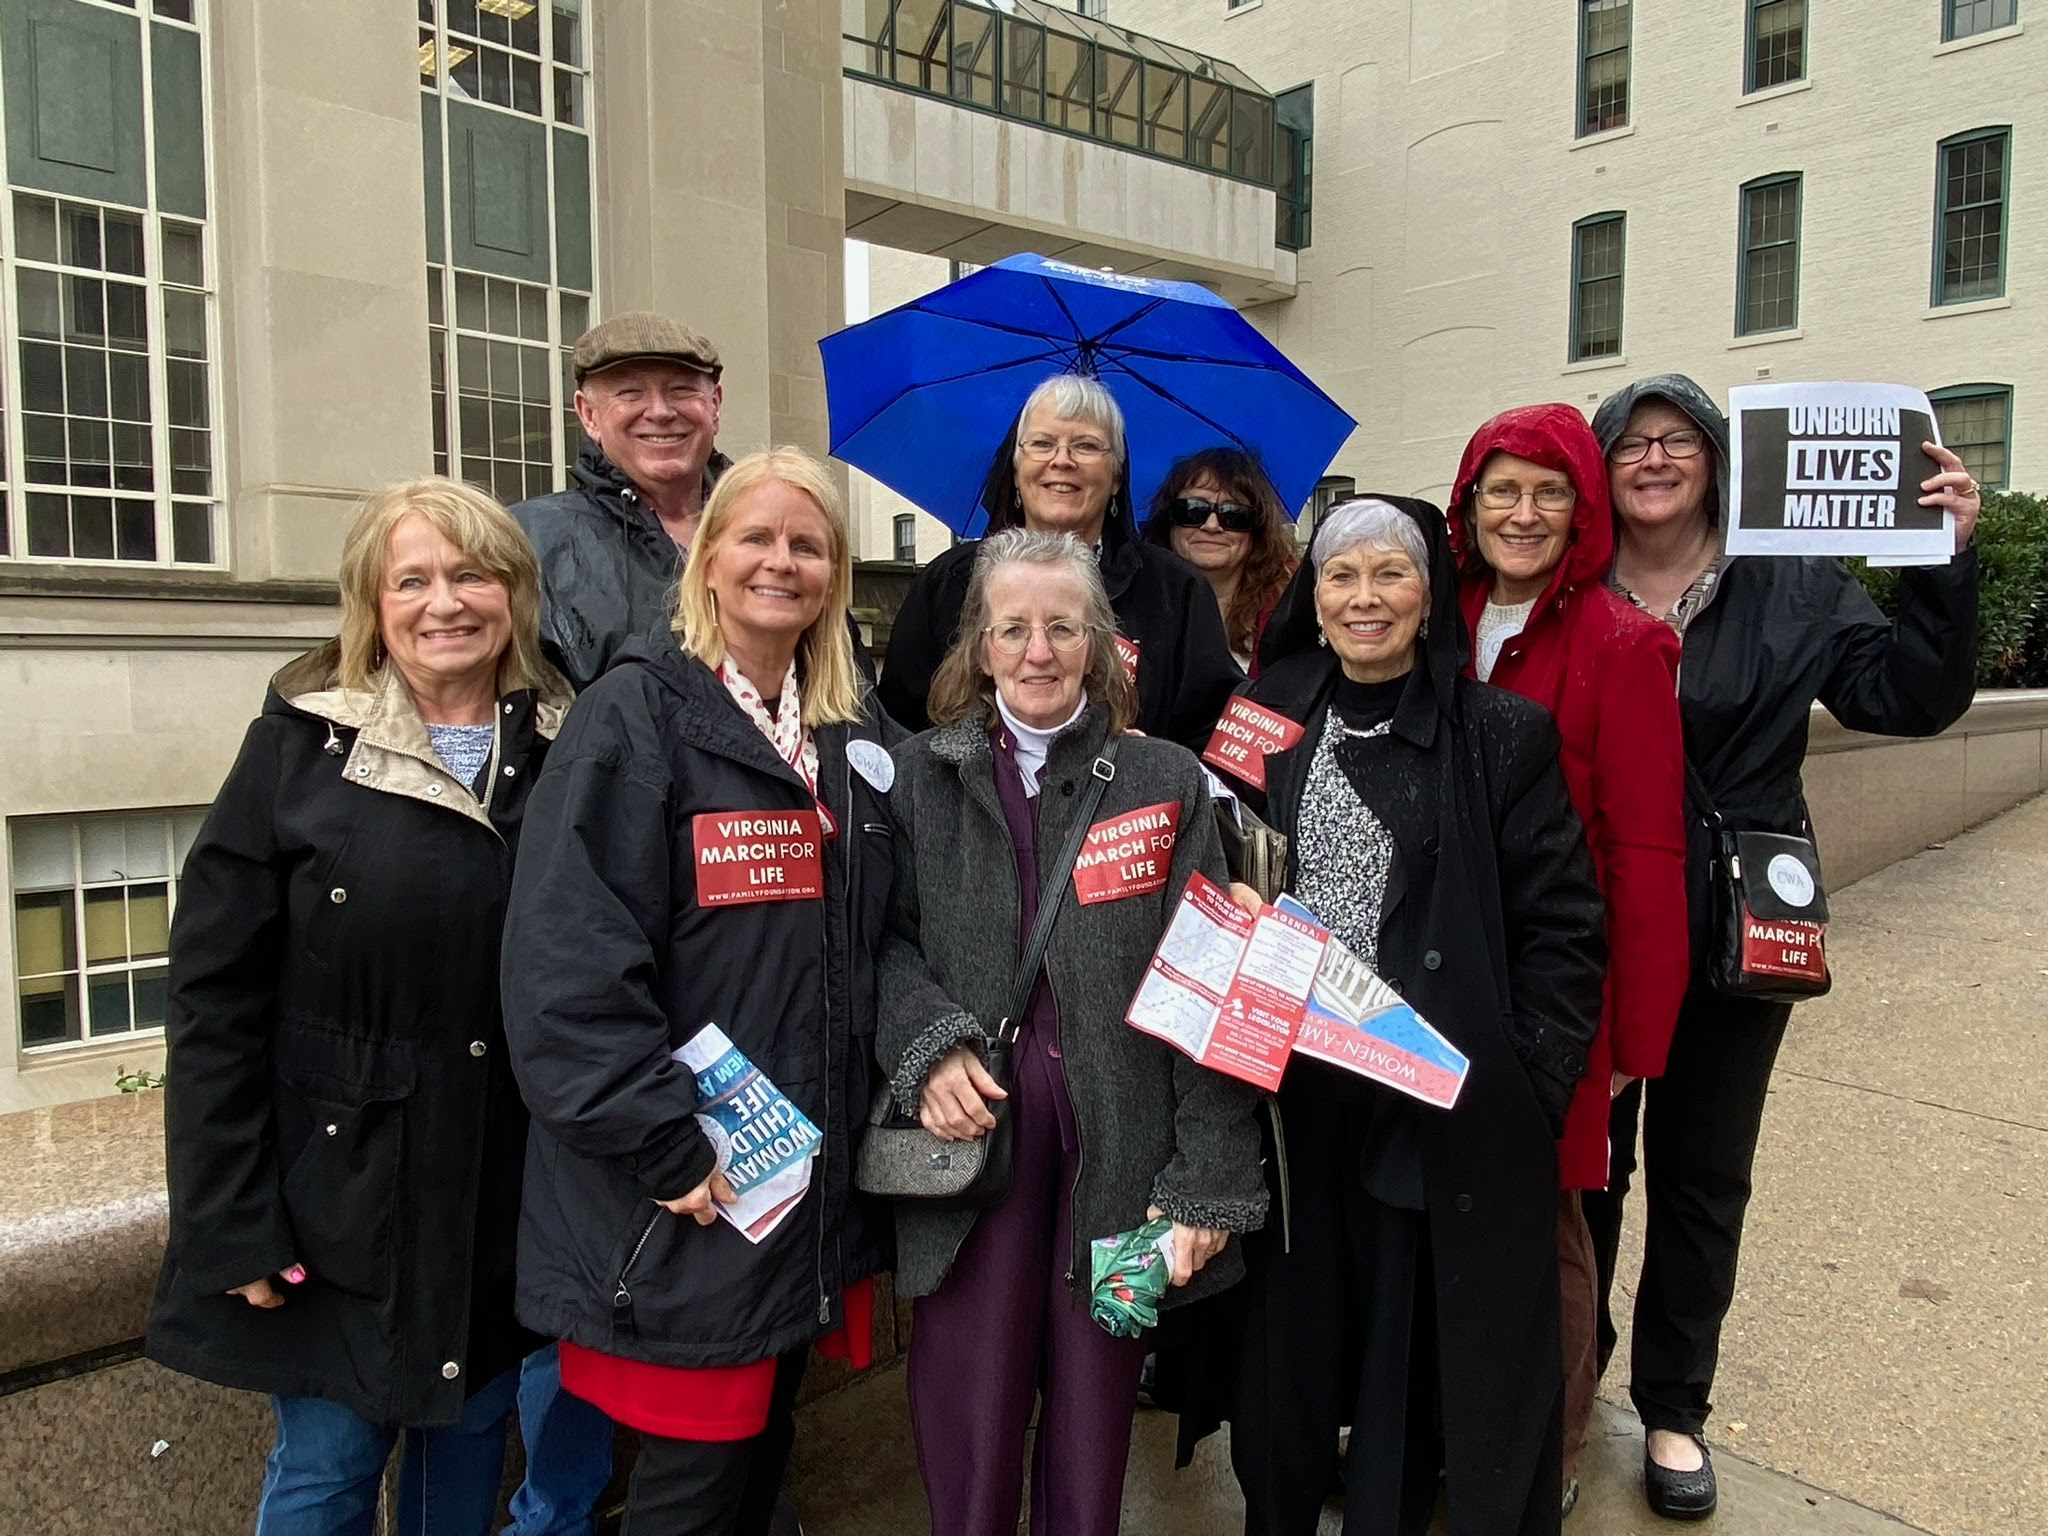 CWA of Virginia Marches for Life in Virginia